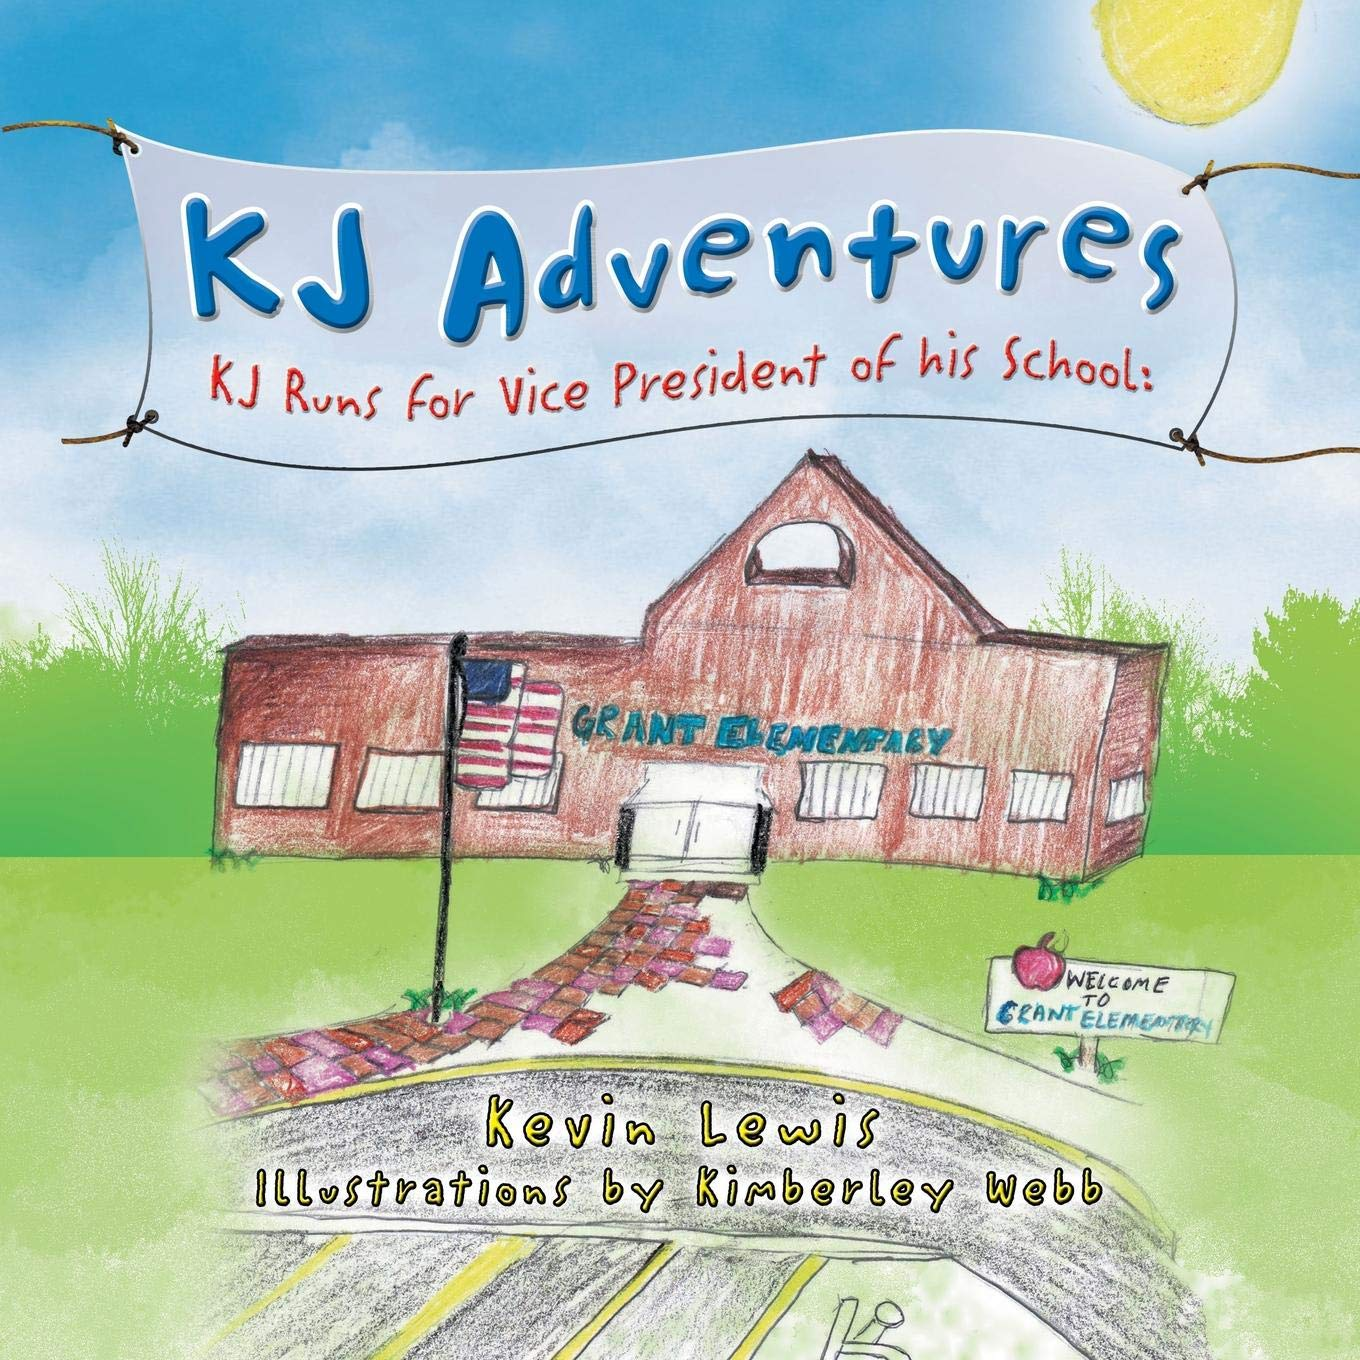 KJ Adventures: KJ Runs for Vice President of His School ebook